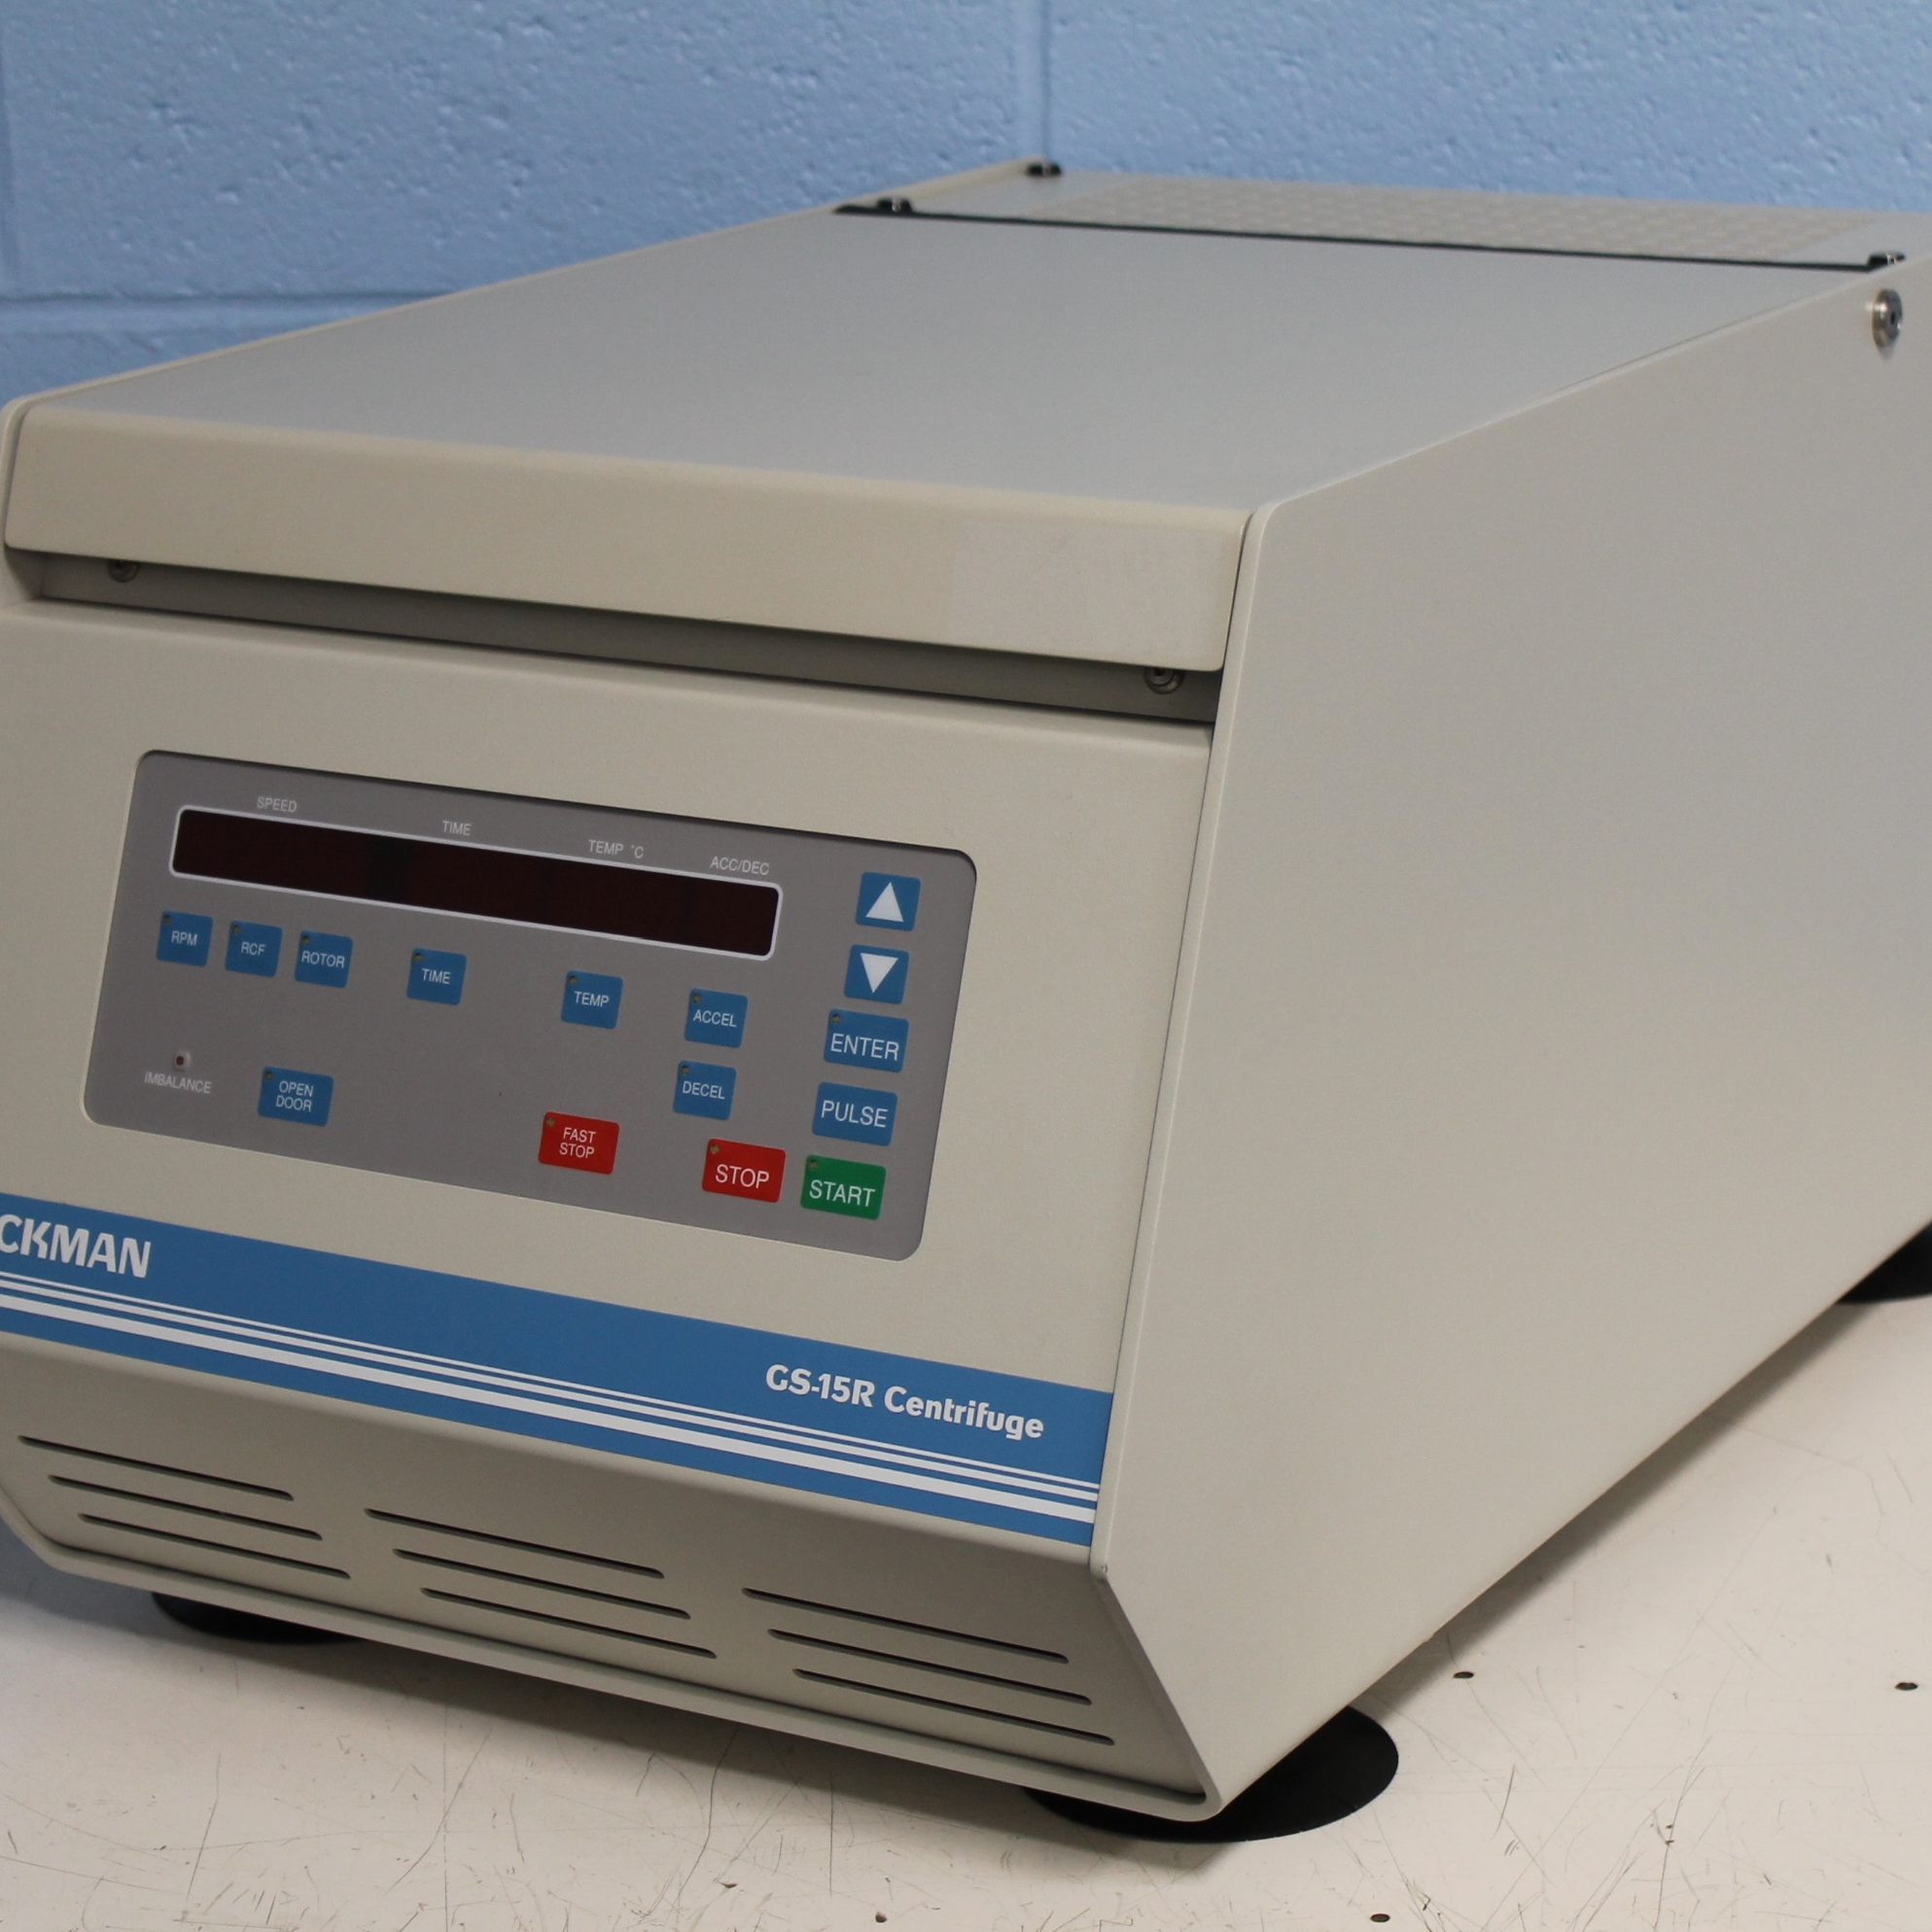 Beckman Coulter GS-15R Refrigerated Benchtop Centrifuge Image